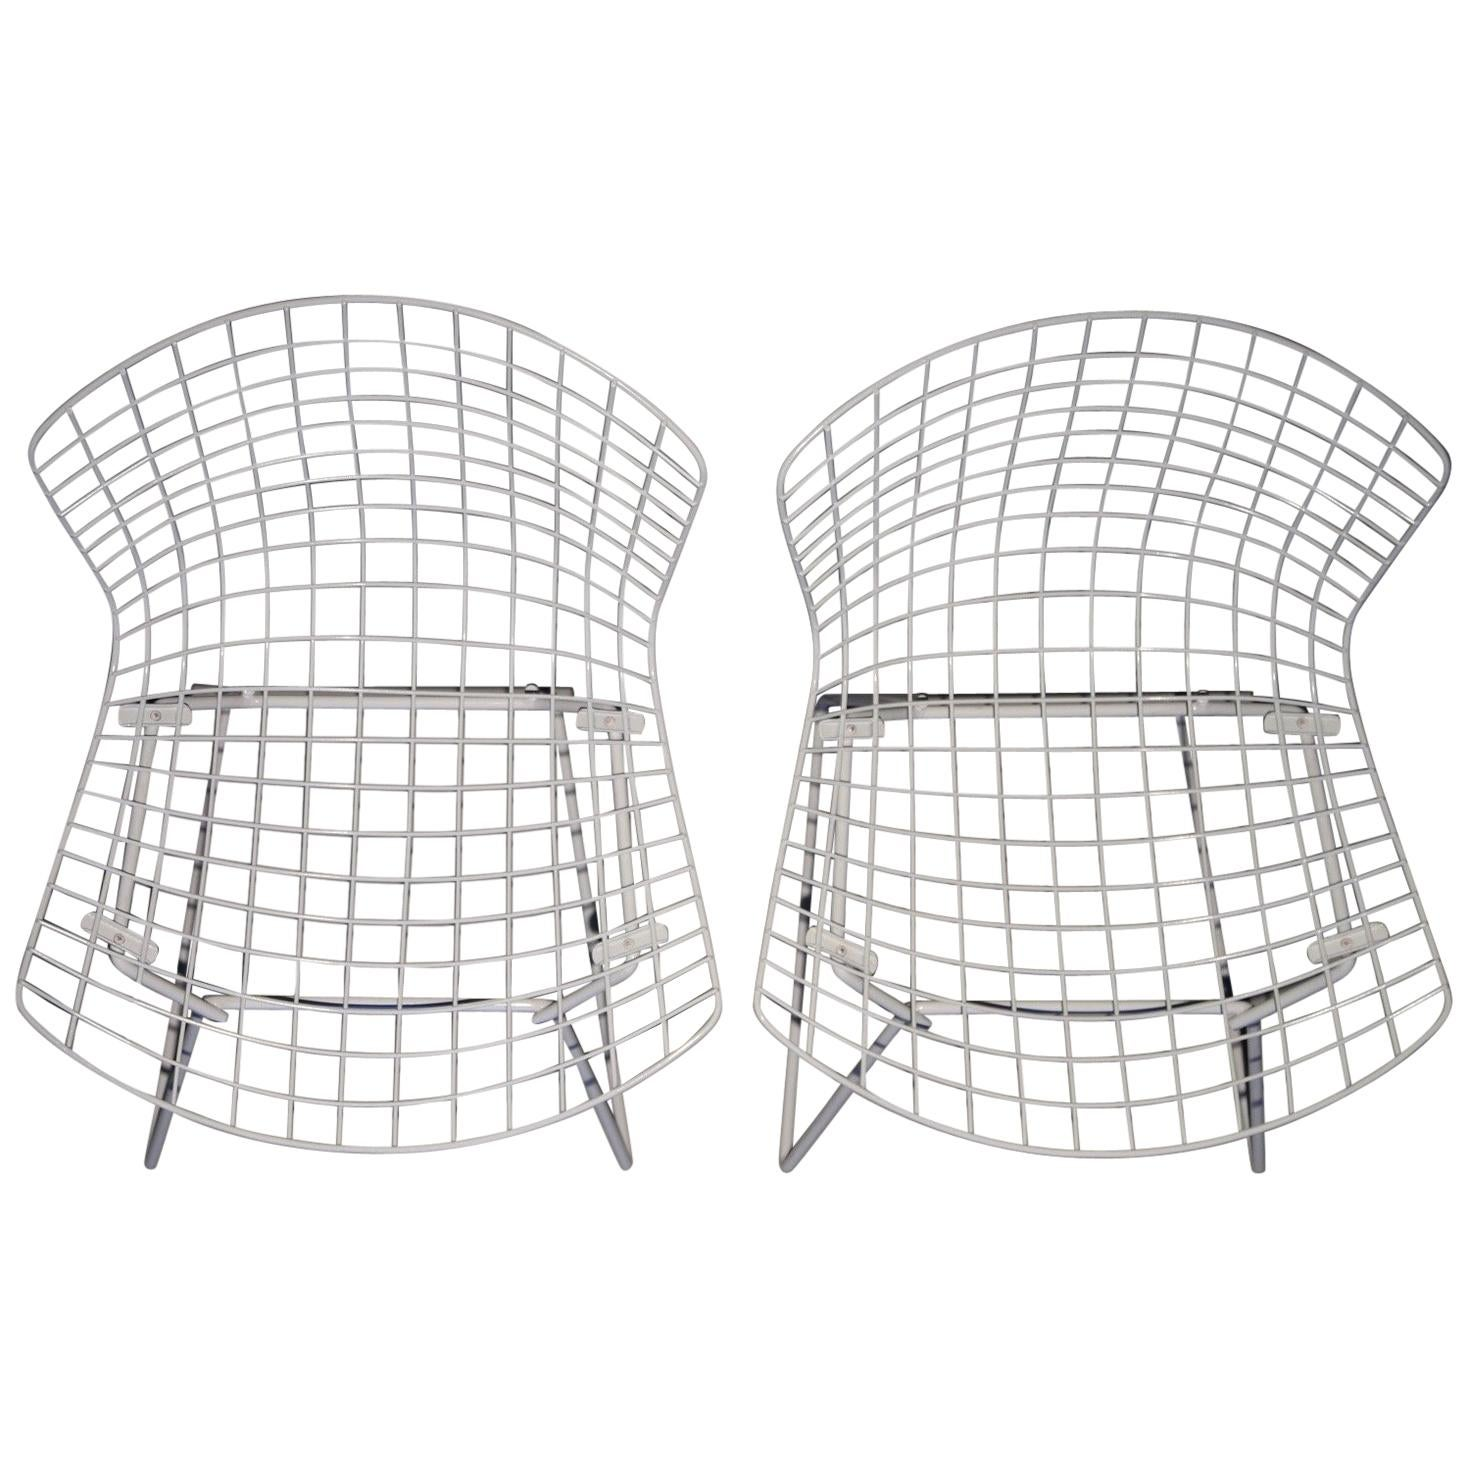 bertoia side chair heated stadium chairs with backs harry for sale at 1stdibs